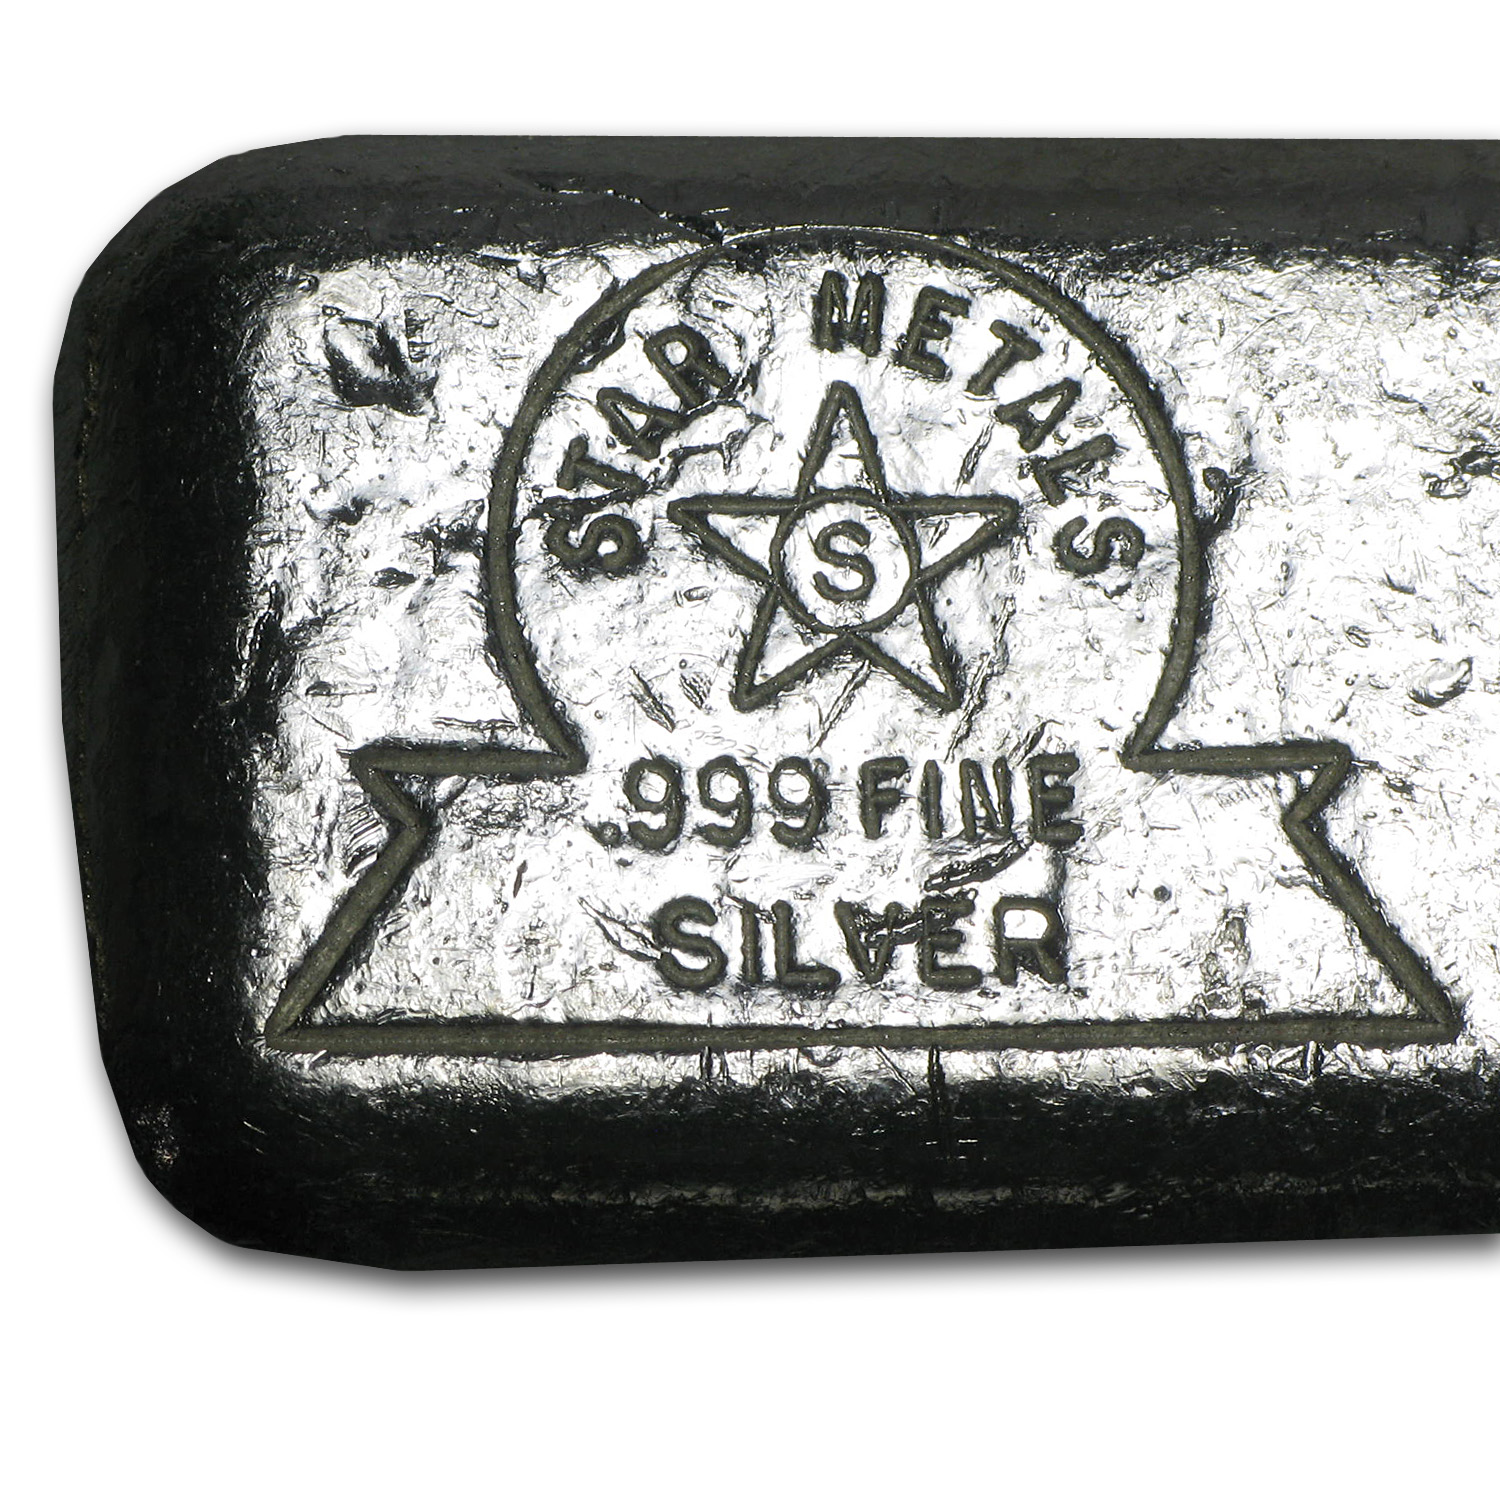 9.52 oz Silver Bar - Star Metals